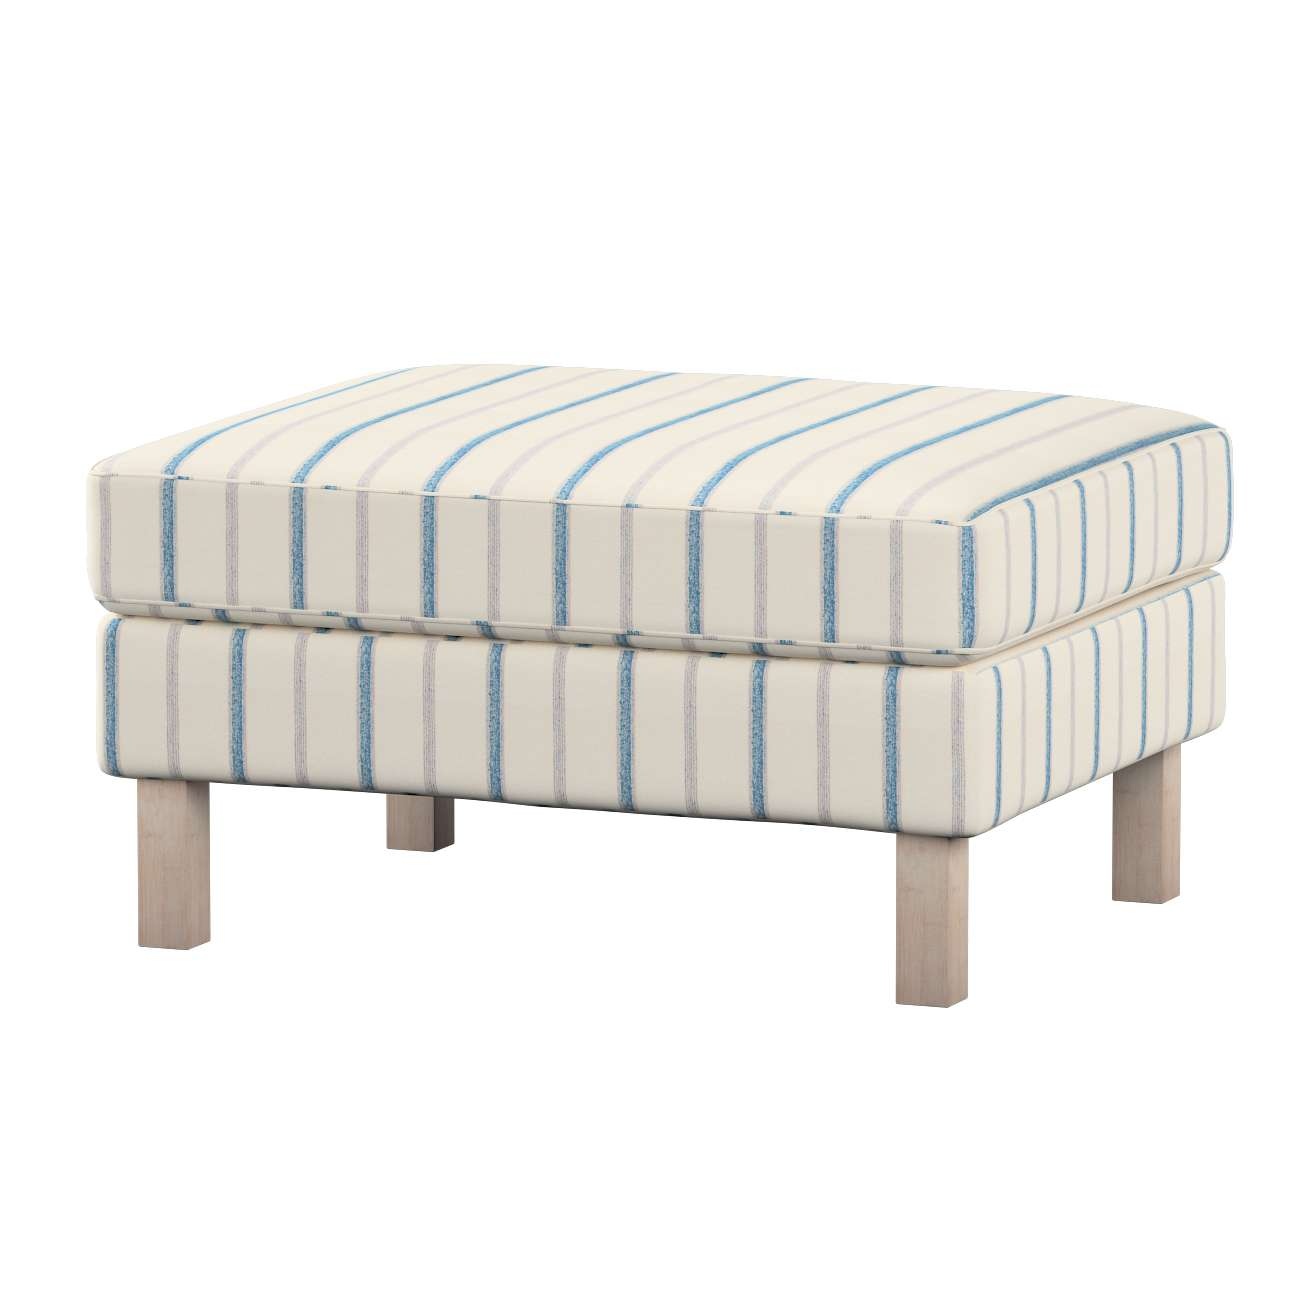 Karlstad footstool cover Karlstad footstool cover in collection Avinon, fabric: 129-66